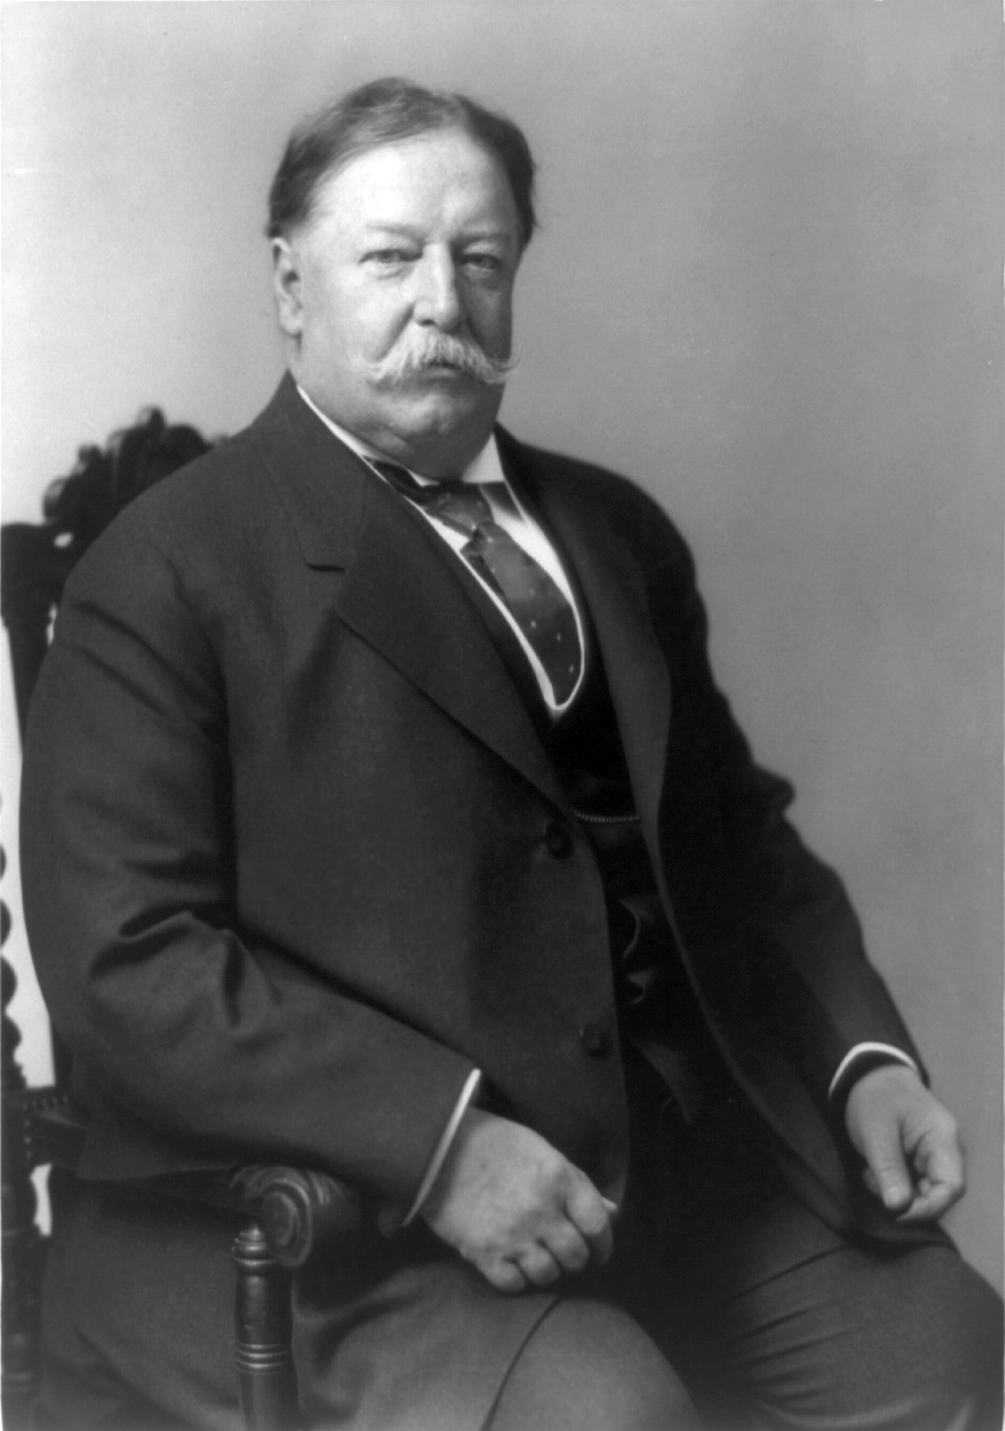 a biography of william howard taft the 27th president of the united states William howard taft biography bryan to become the twenty-seventh president of the united states but taft's honeymoon period in the president taft.